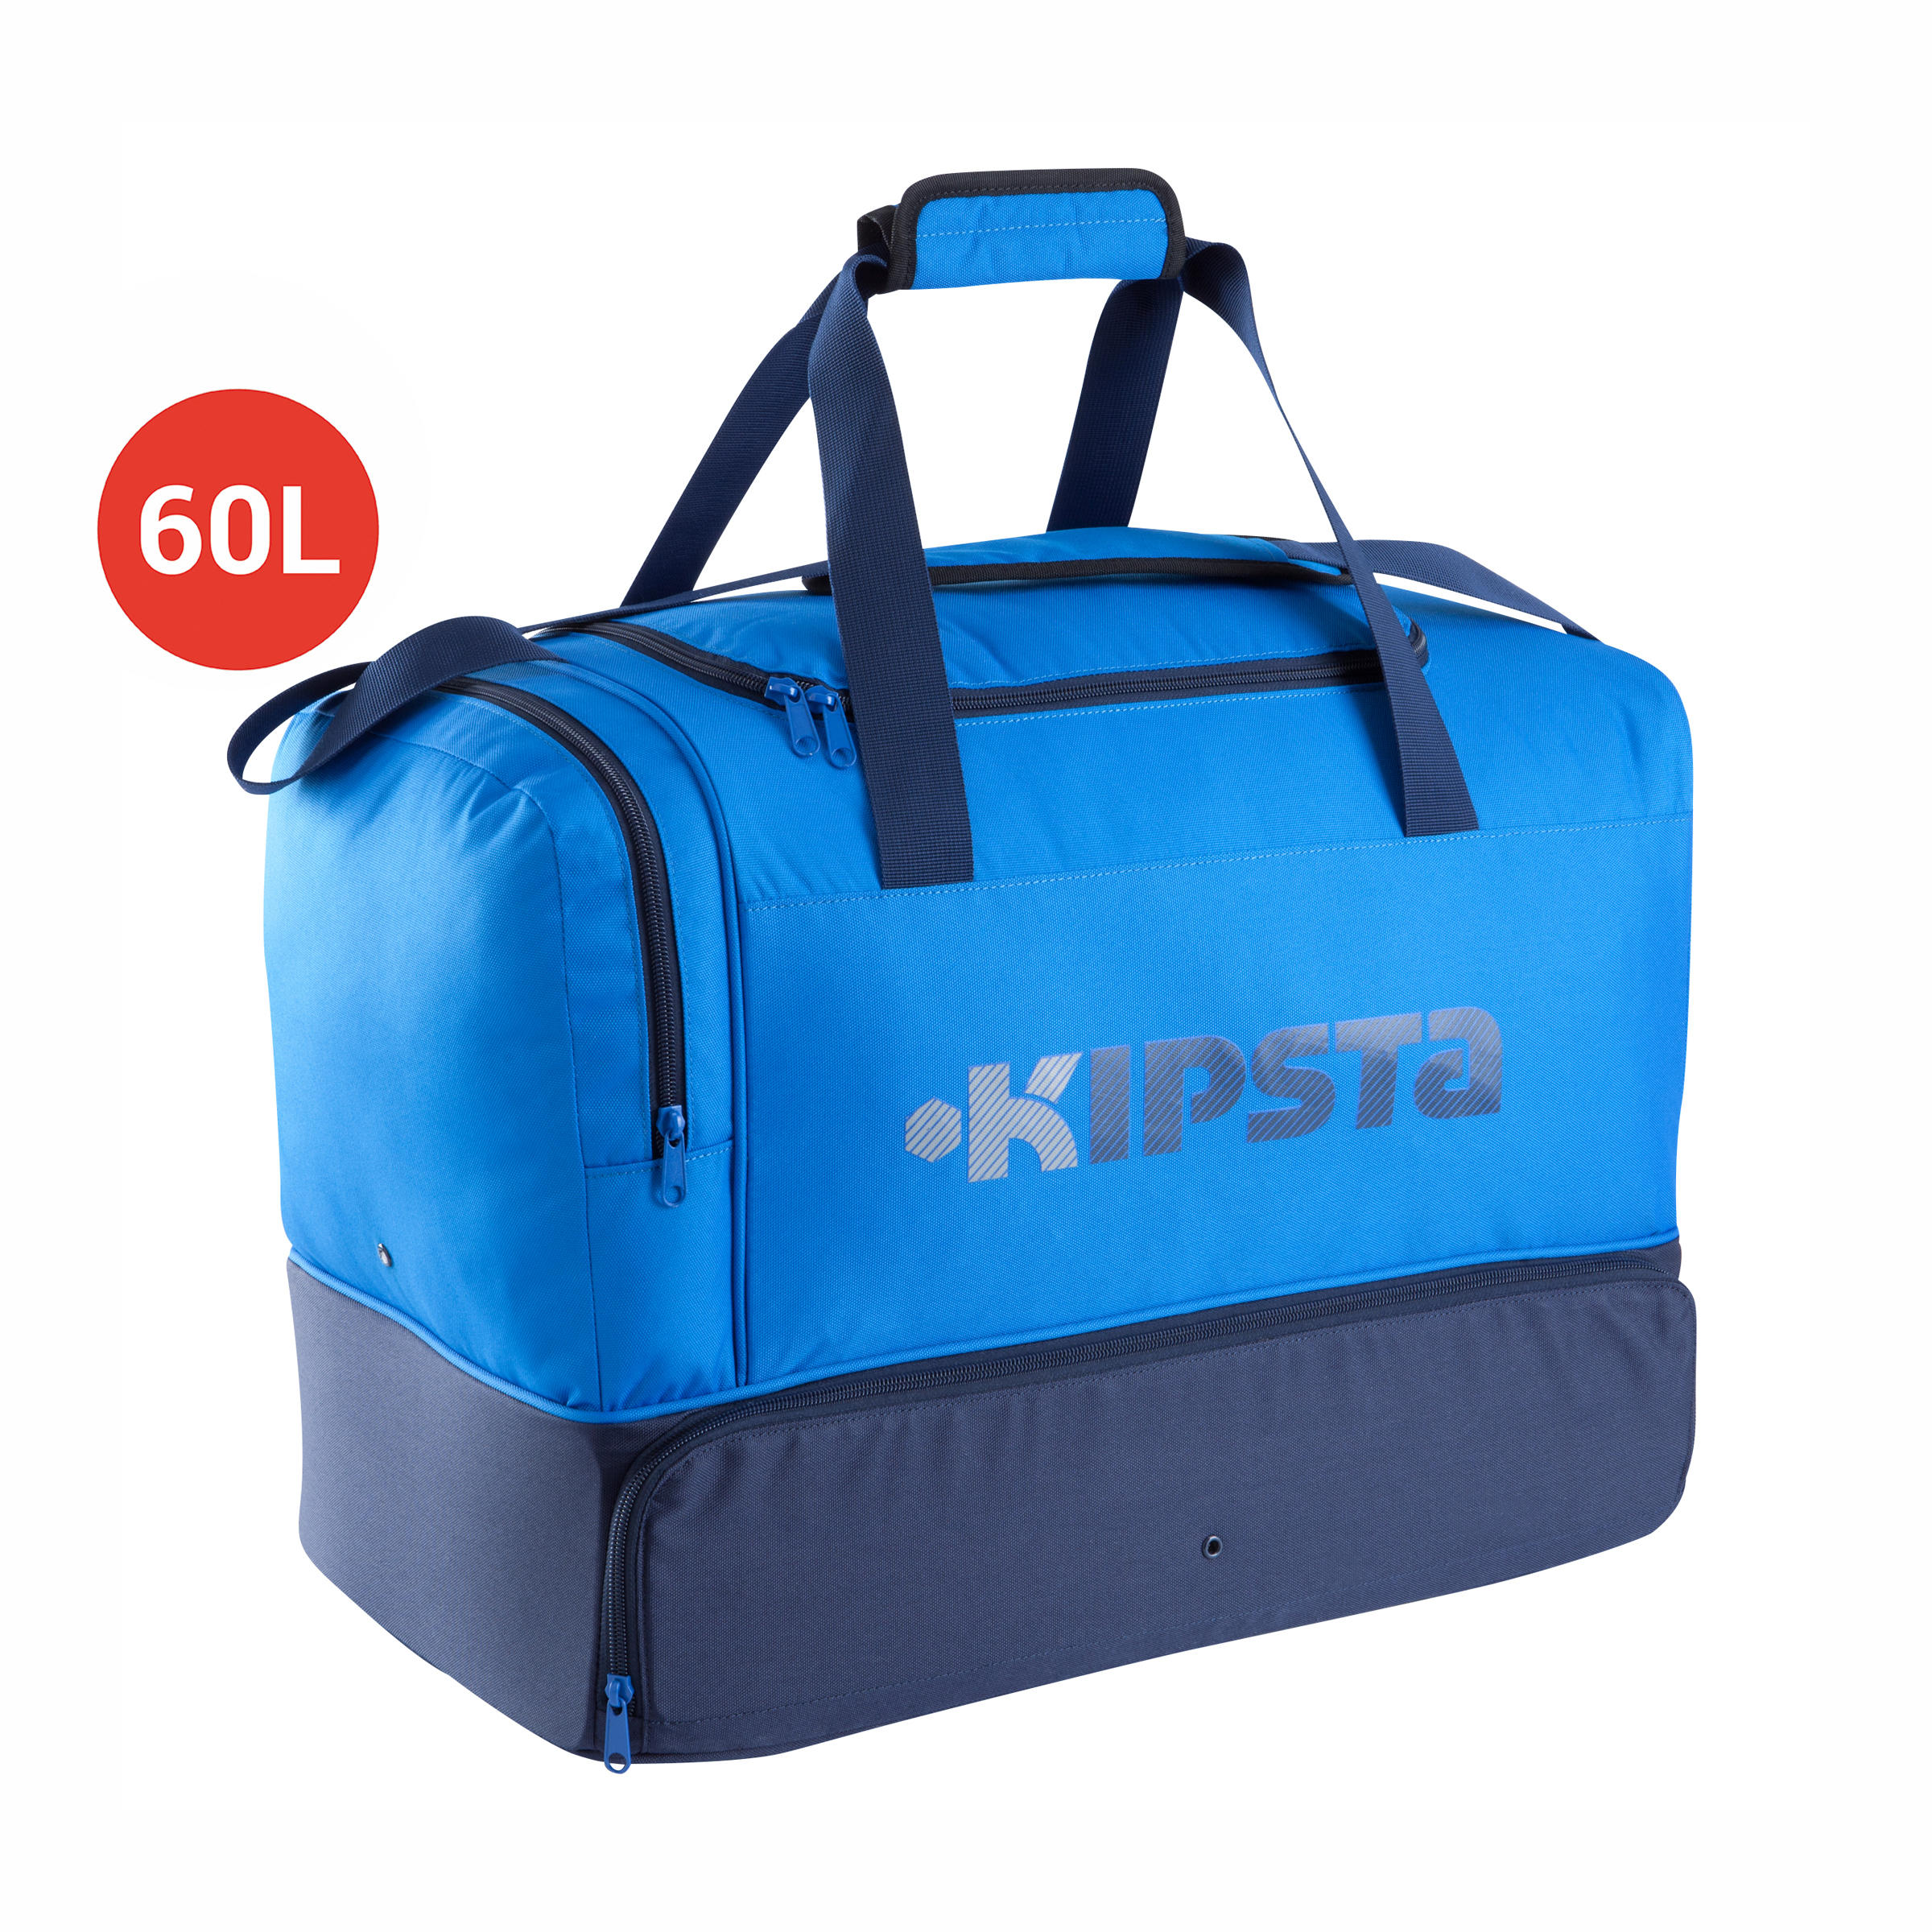 Hardcase Team Sports Bag 60 Litres - Blue